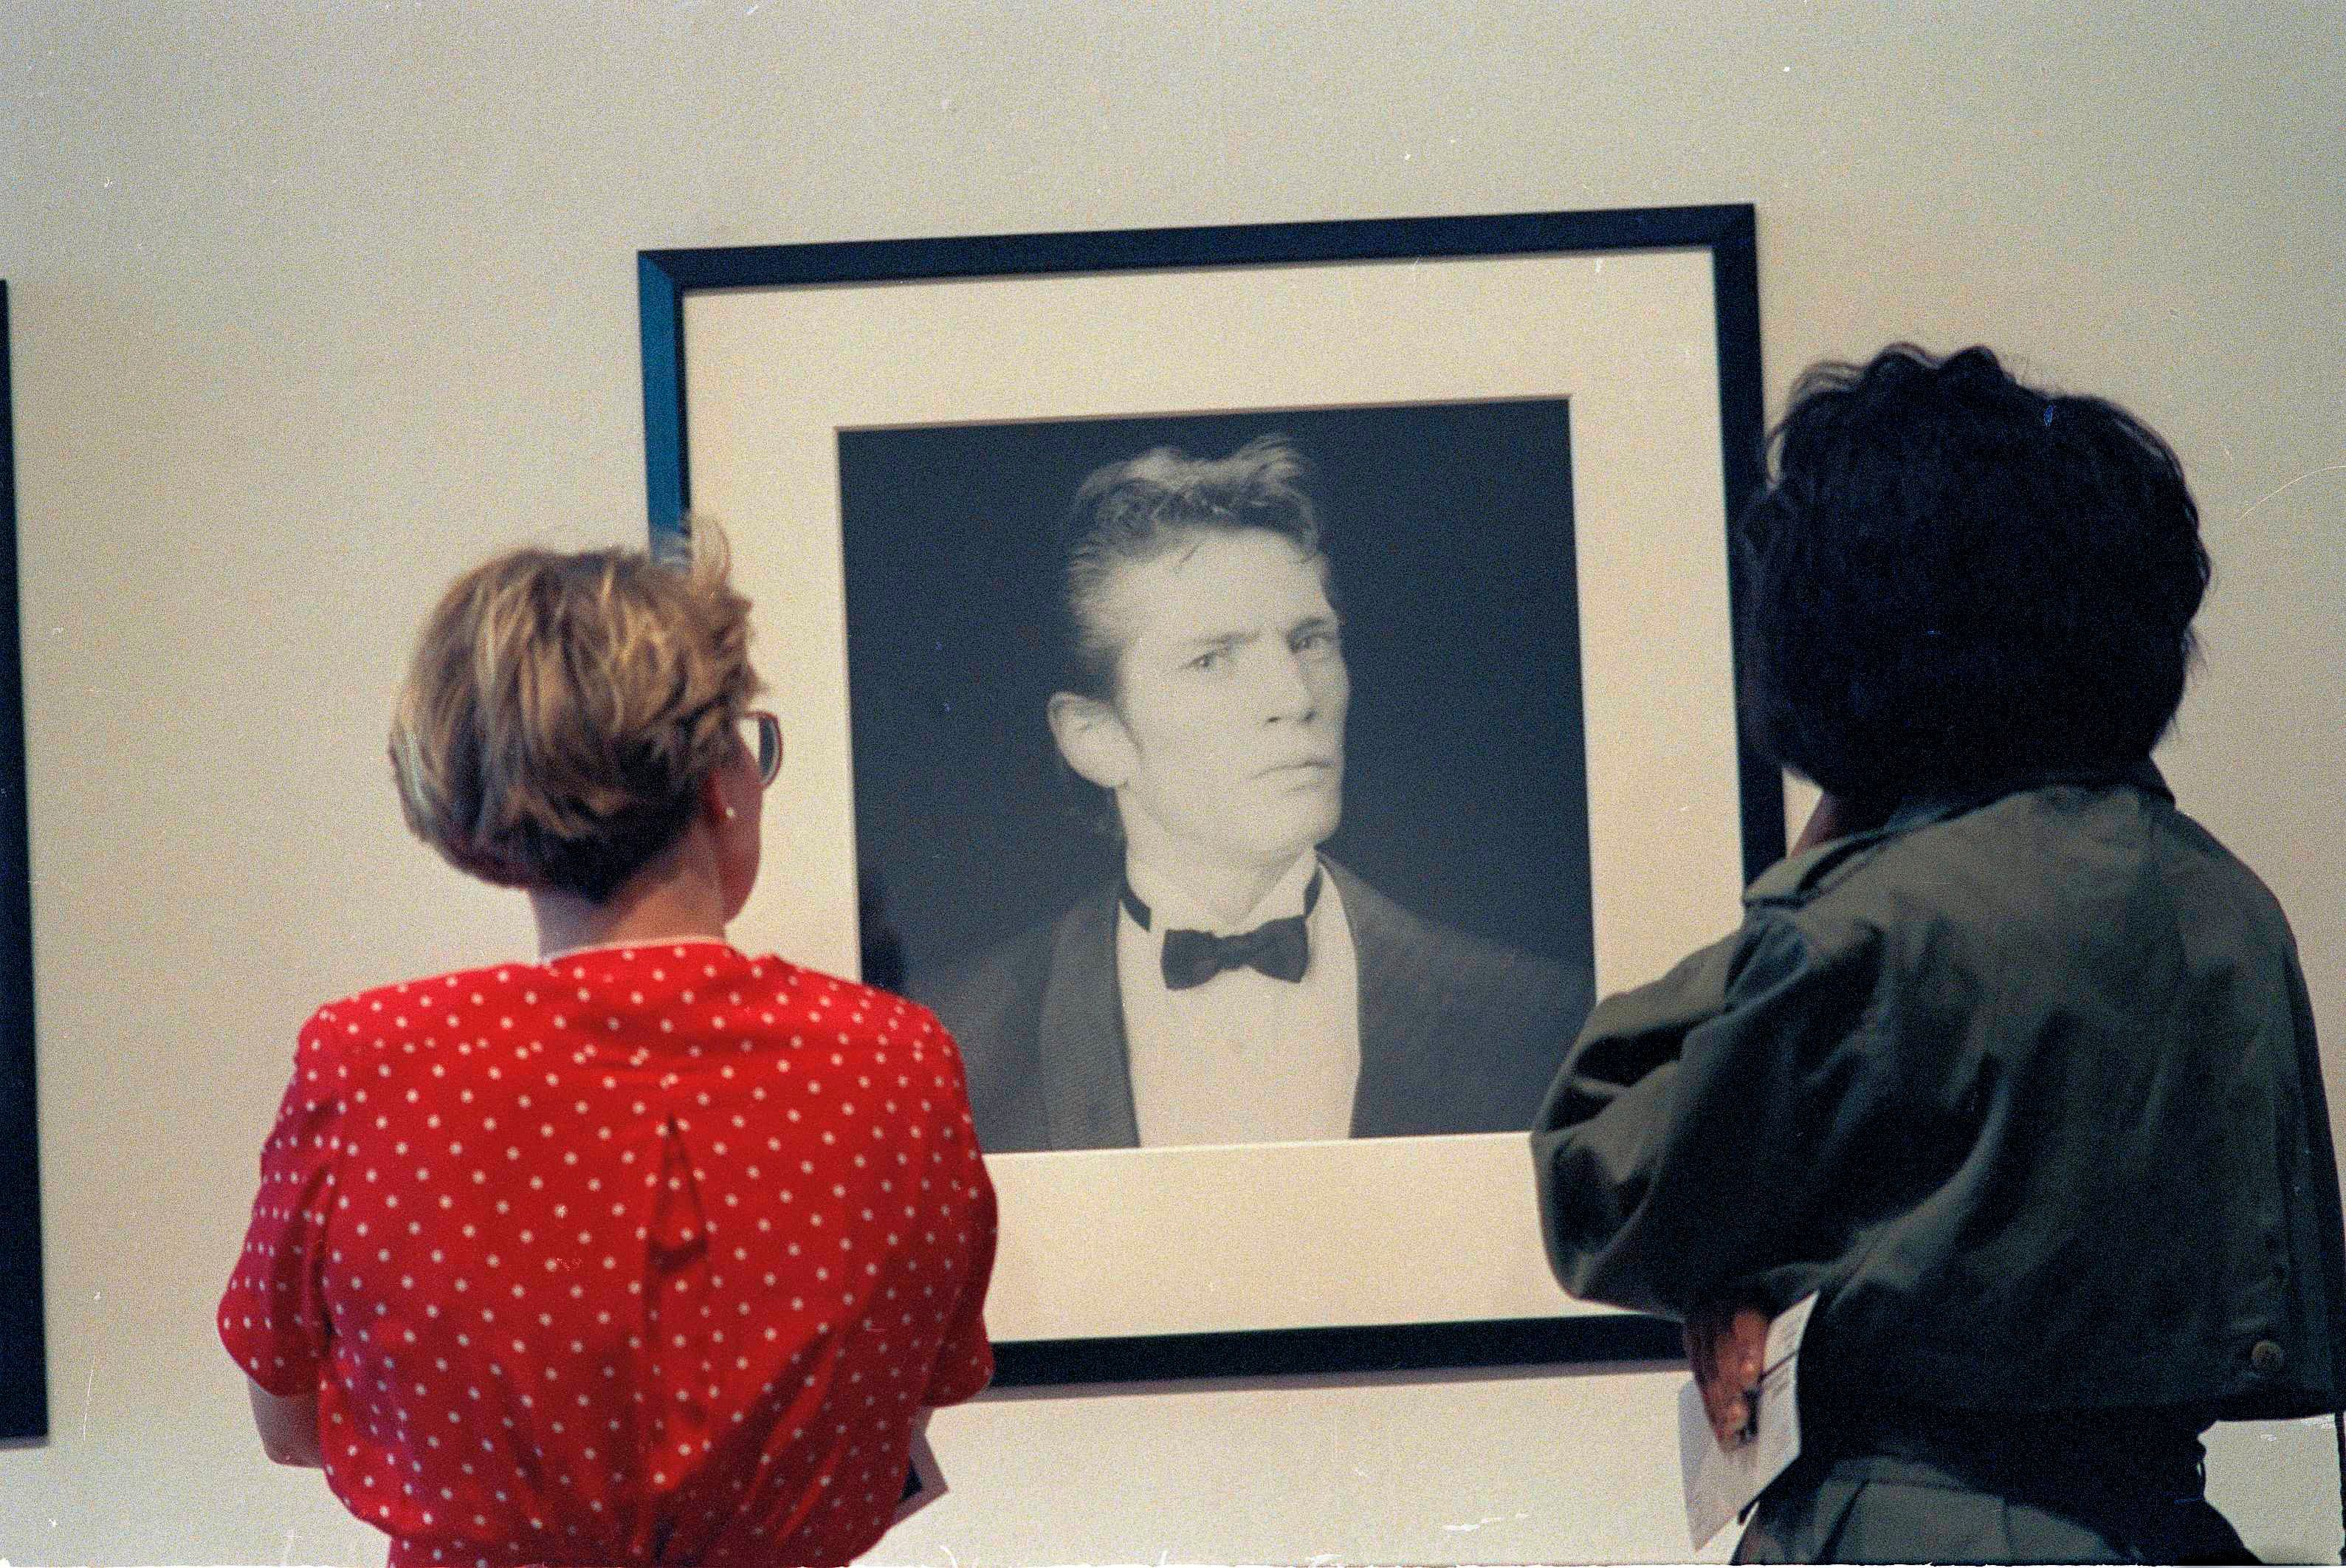 Two women look at a self-portrait of photographer Robert Mapplethorpe done in 1986 while viewing the exhibit at the Contemporary Arts Center in Cincinnati, Ohio, April 9, 1990. (AP Photo/Al Behrman)